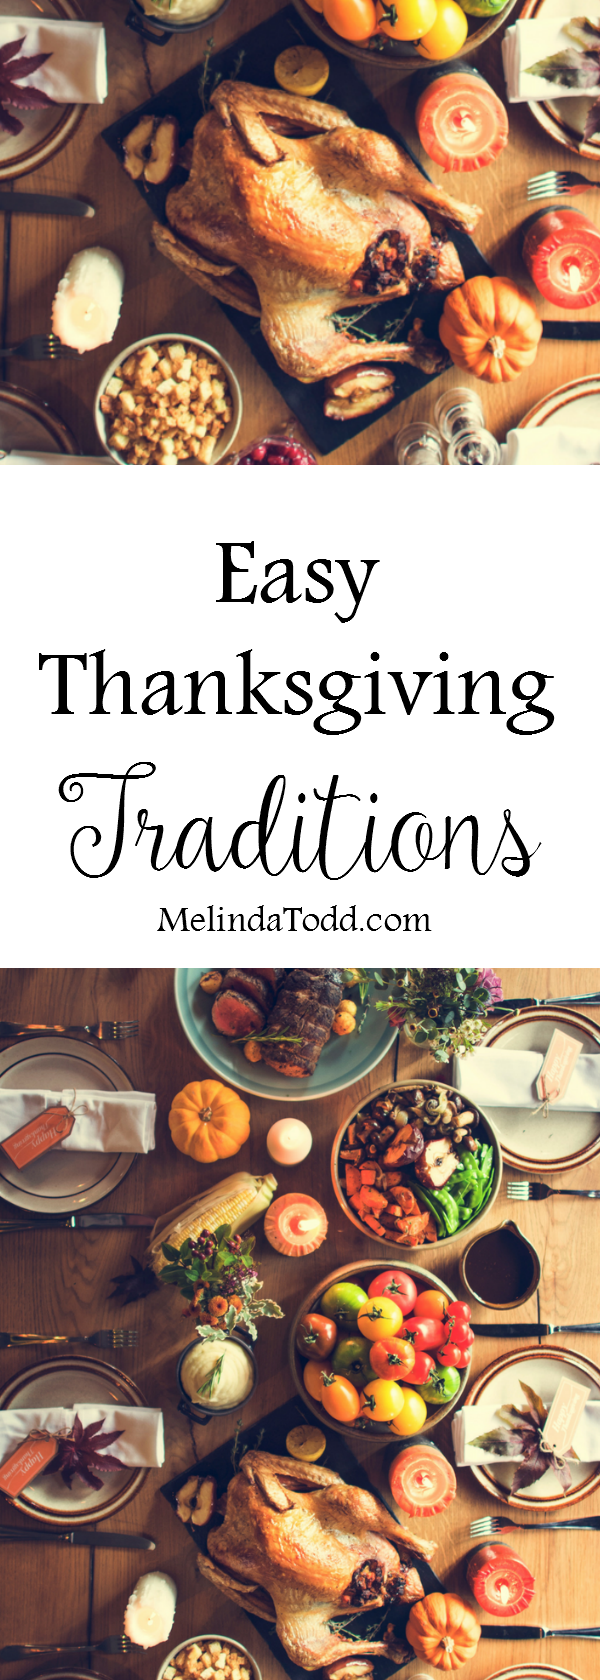 Easy Thanksgiving Tradition For A Better Day With Family